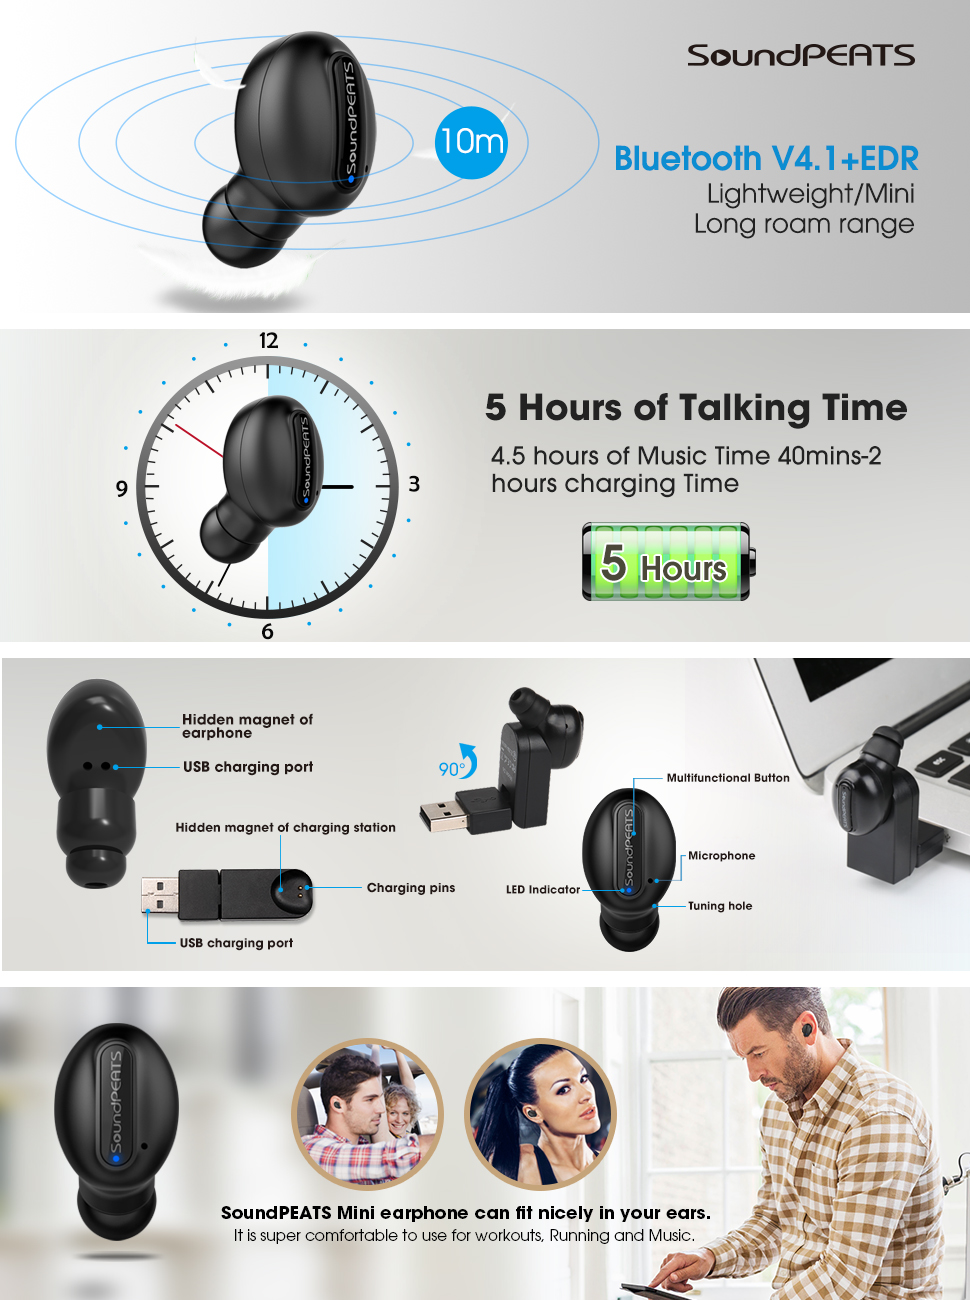 SoundPEATS Mini V4.1 Bluetooth Wireless Headphone [4.5 Hours Music Time, 2 Magnetic USB Charger] with Microphone